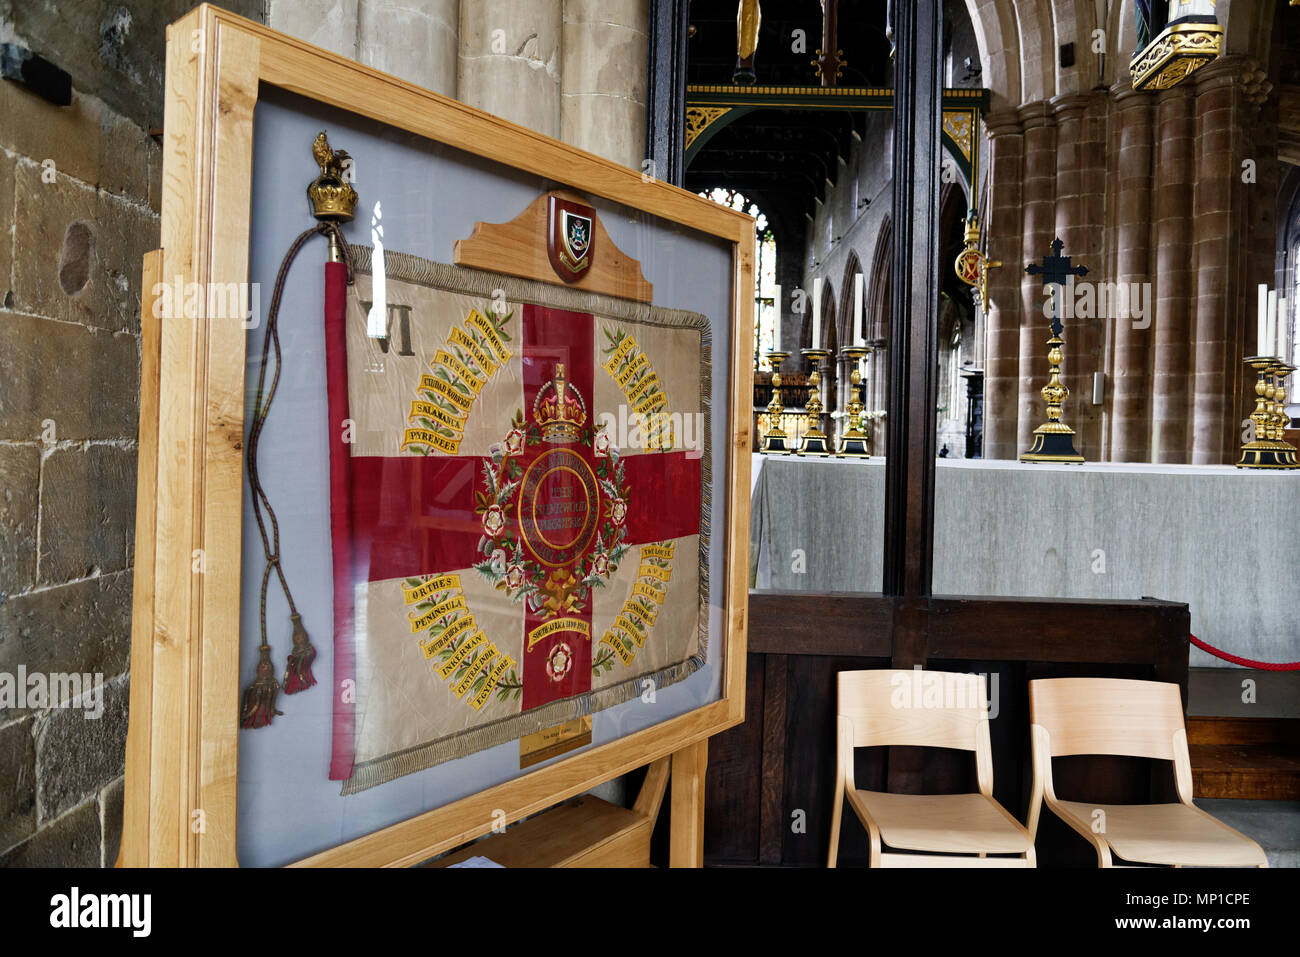 The colours of the 6th Batallion Sherwood Foresters regiment in Chesterfield parish church showing 19th century battles such as Sebastopol, Abyssinia  - Stock Image